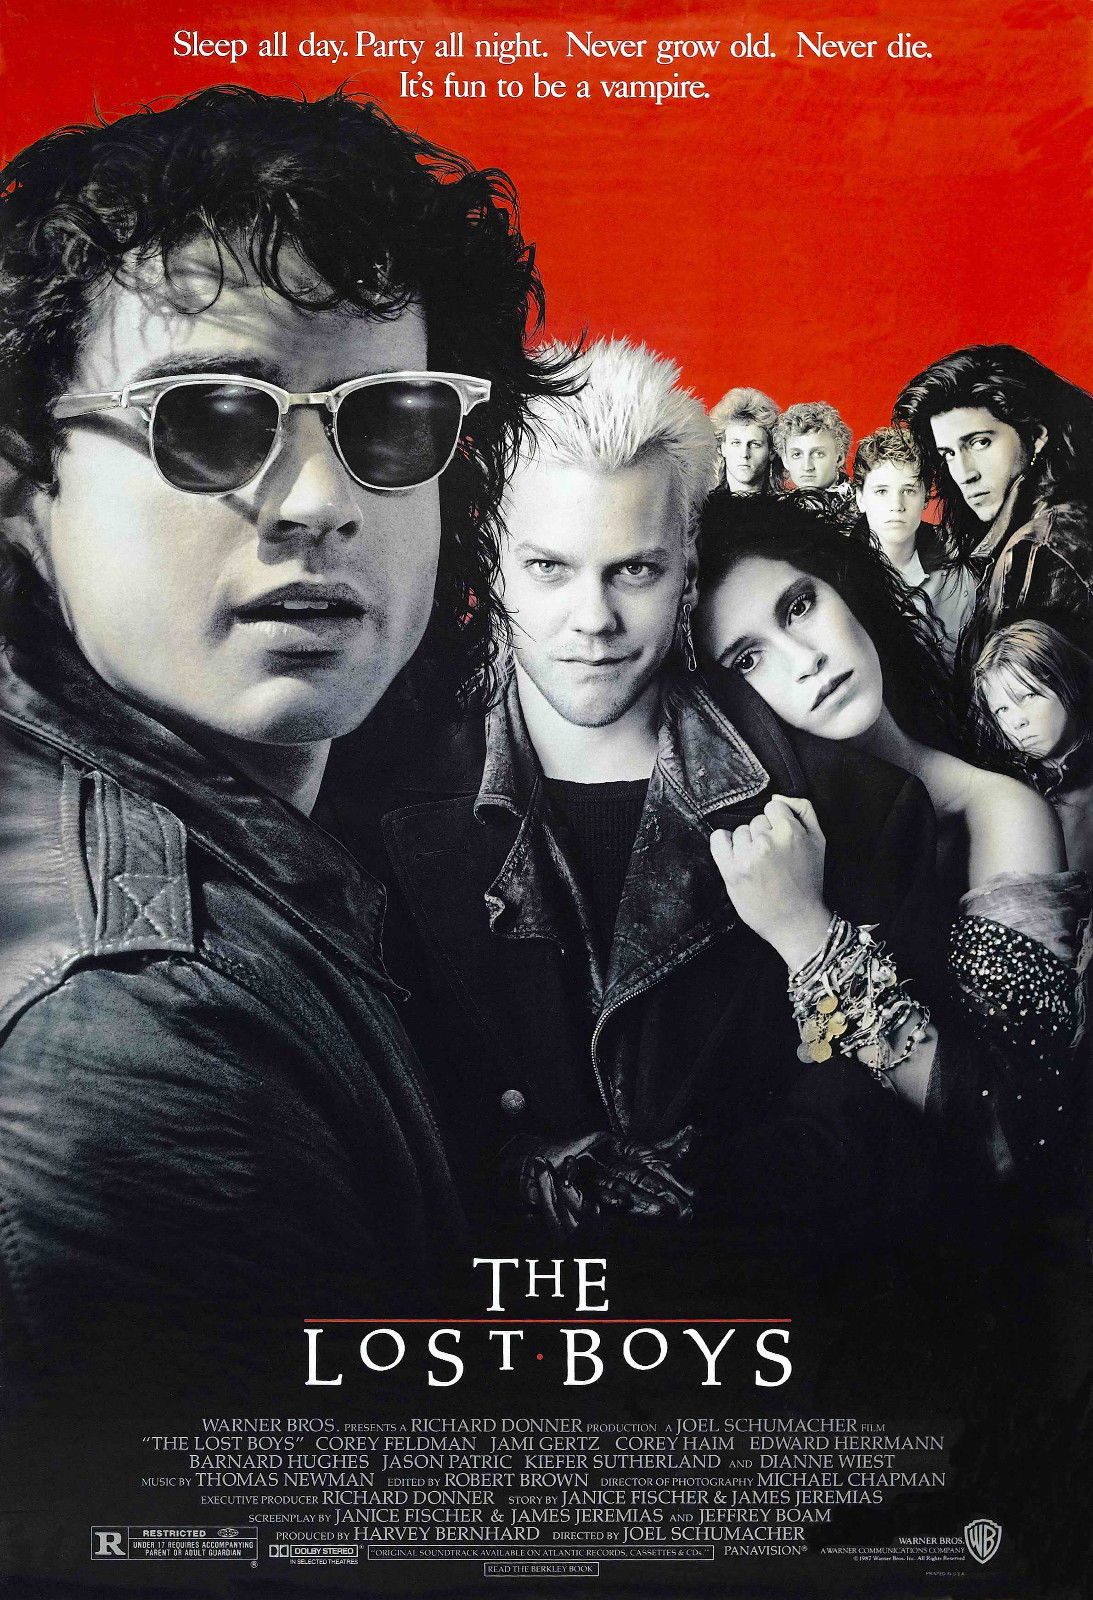 72290-The-Lost-Boys-1987-Movie-Vampires-Wall-Print-Poster-Affiche